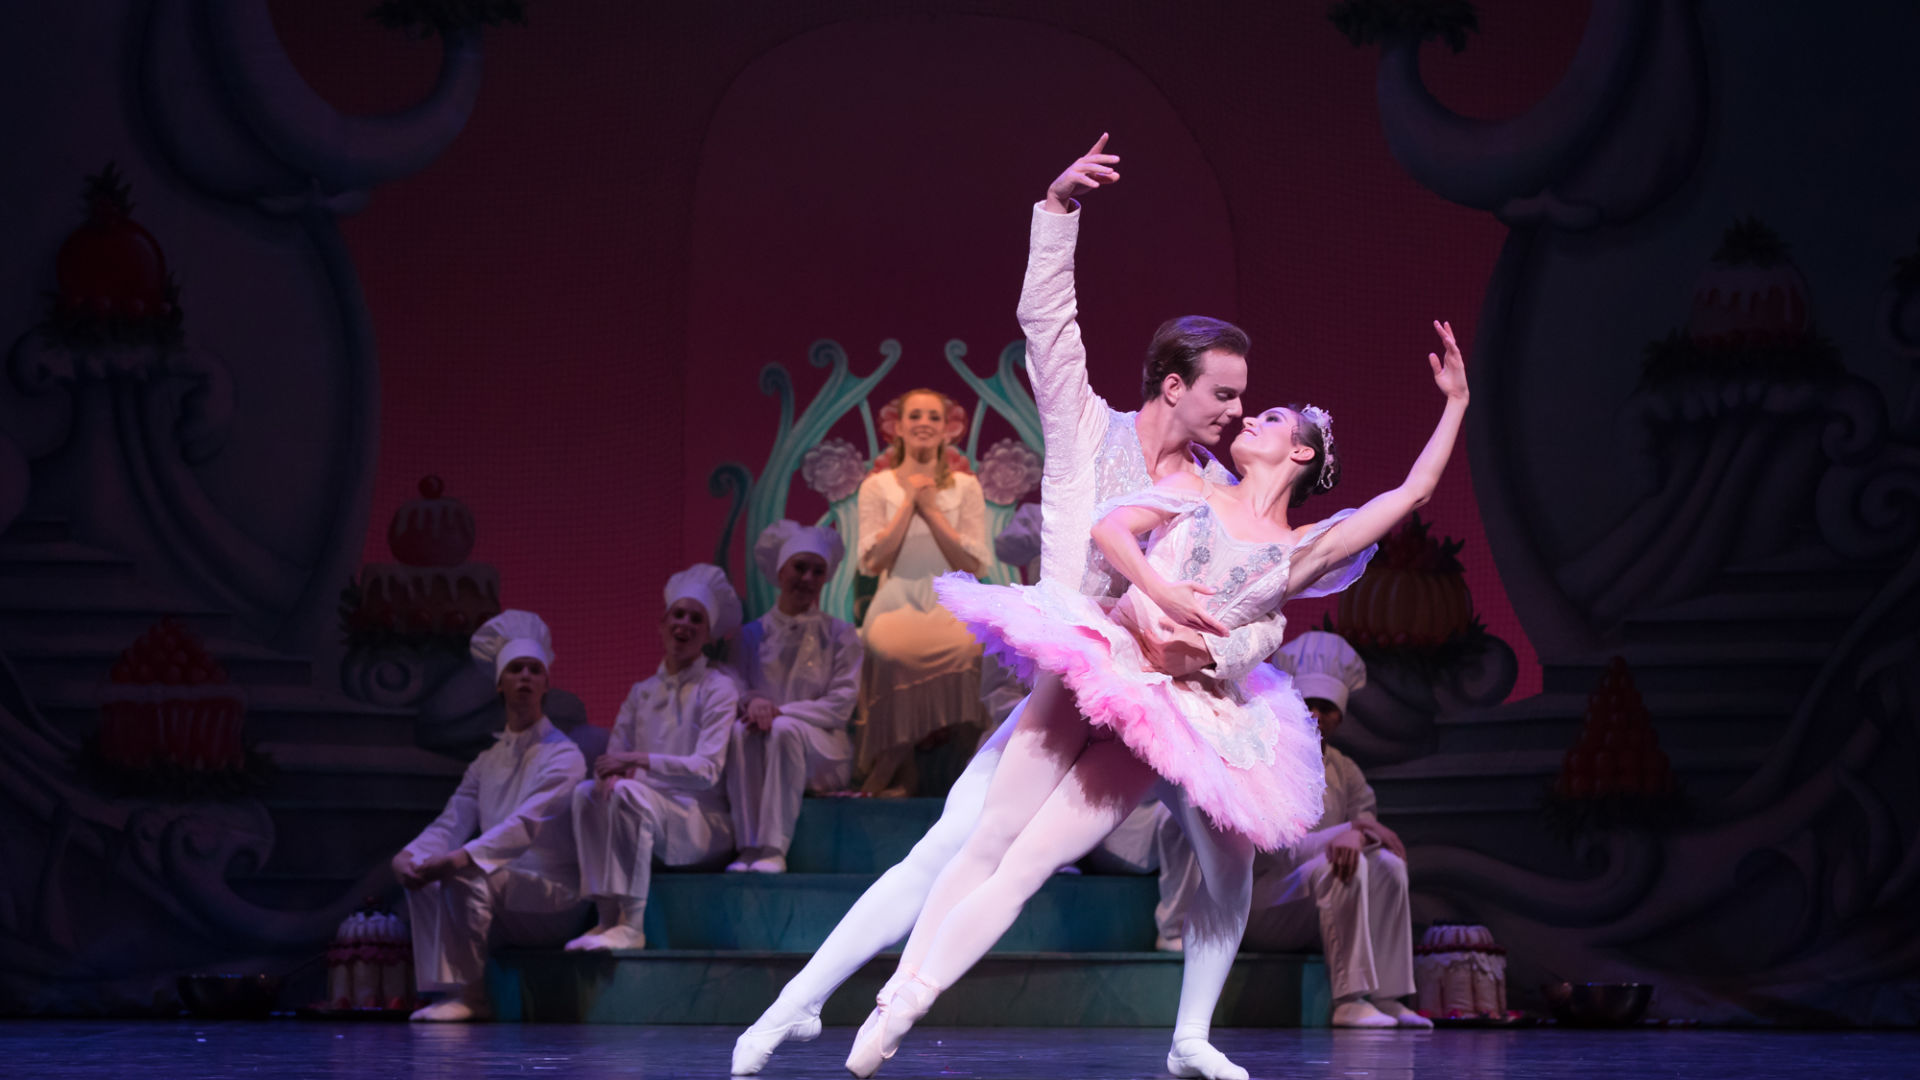 Queensland Ballet looking to spread some Christmas Joy